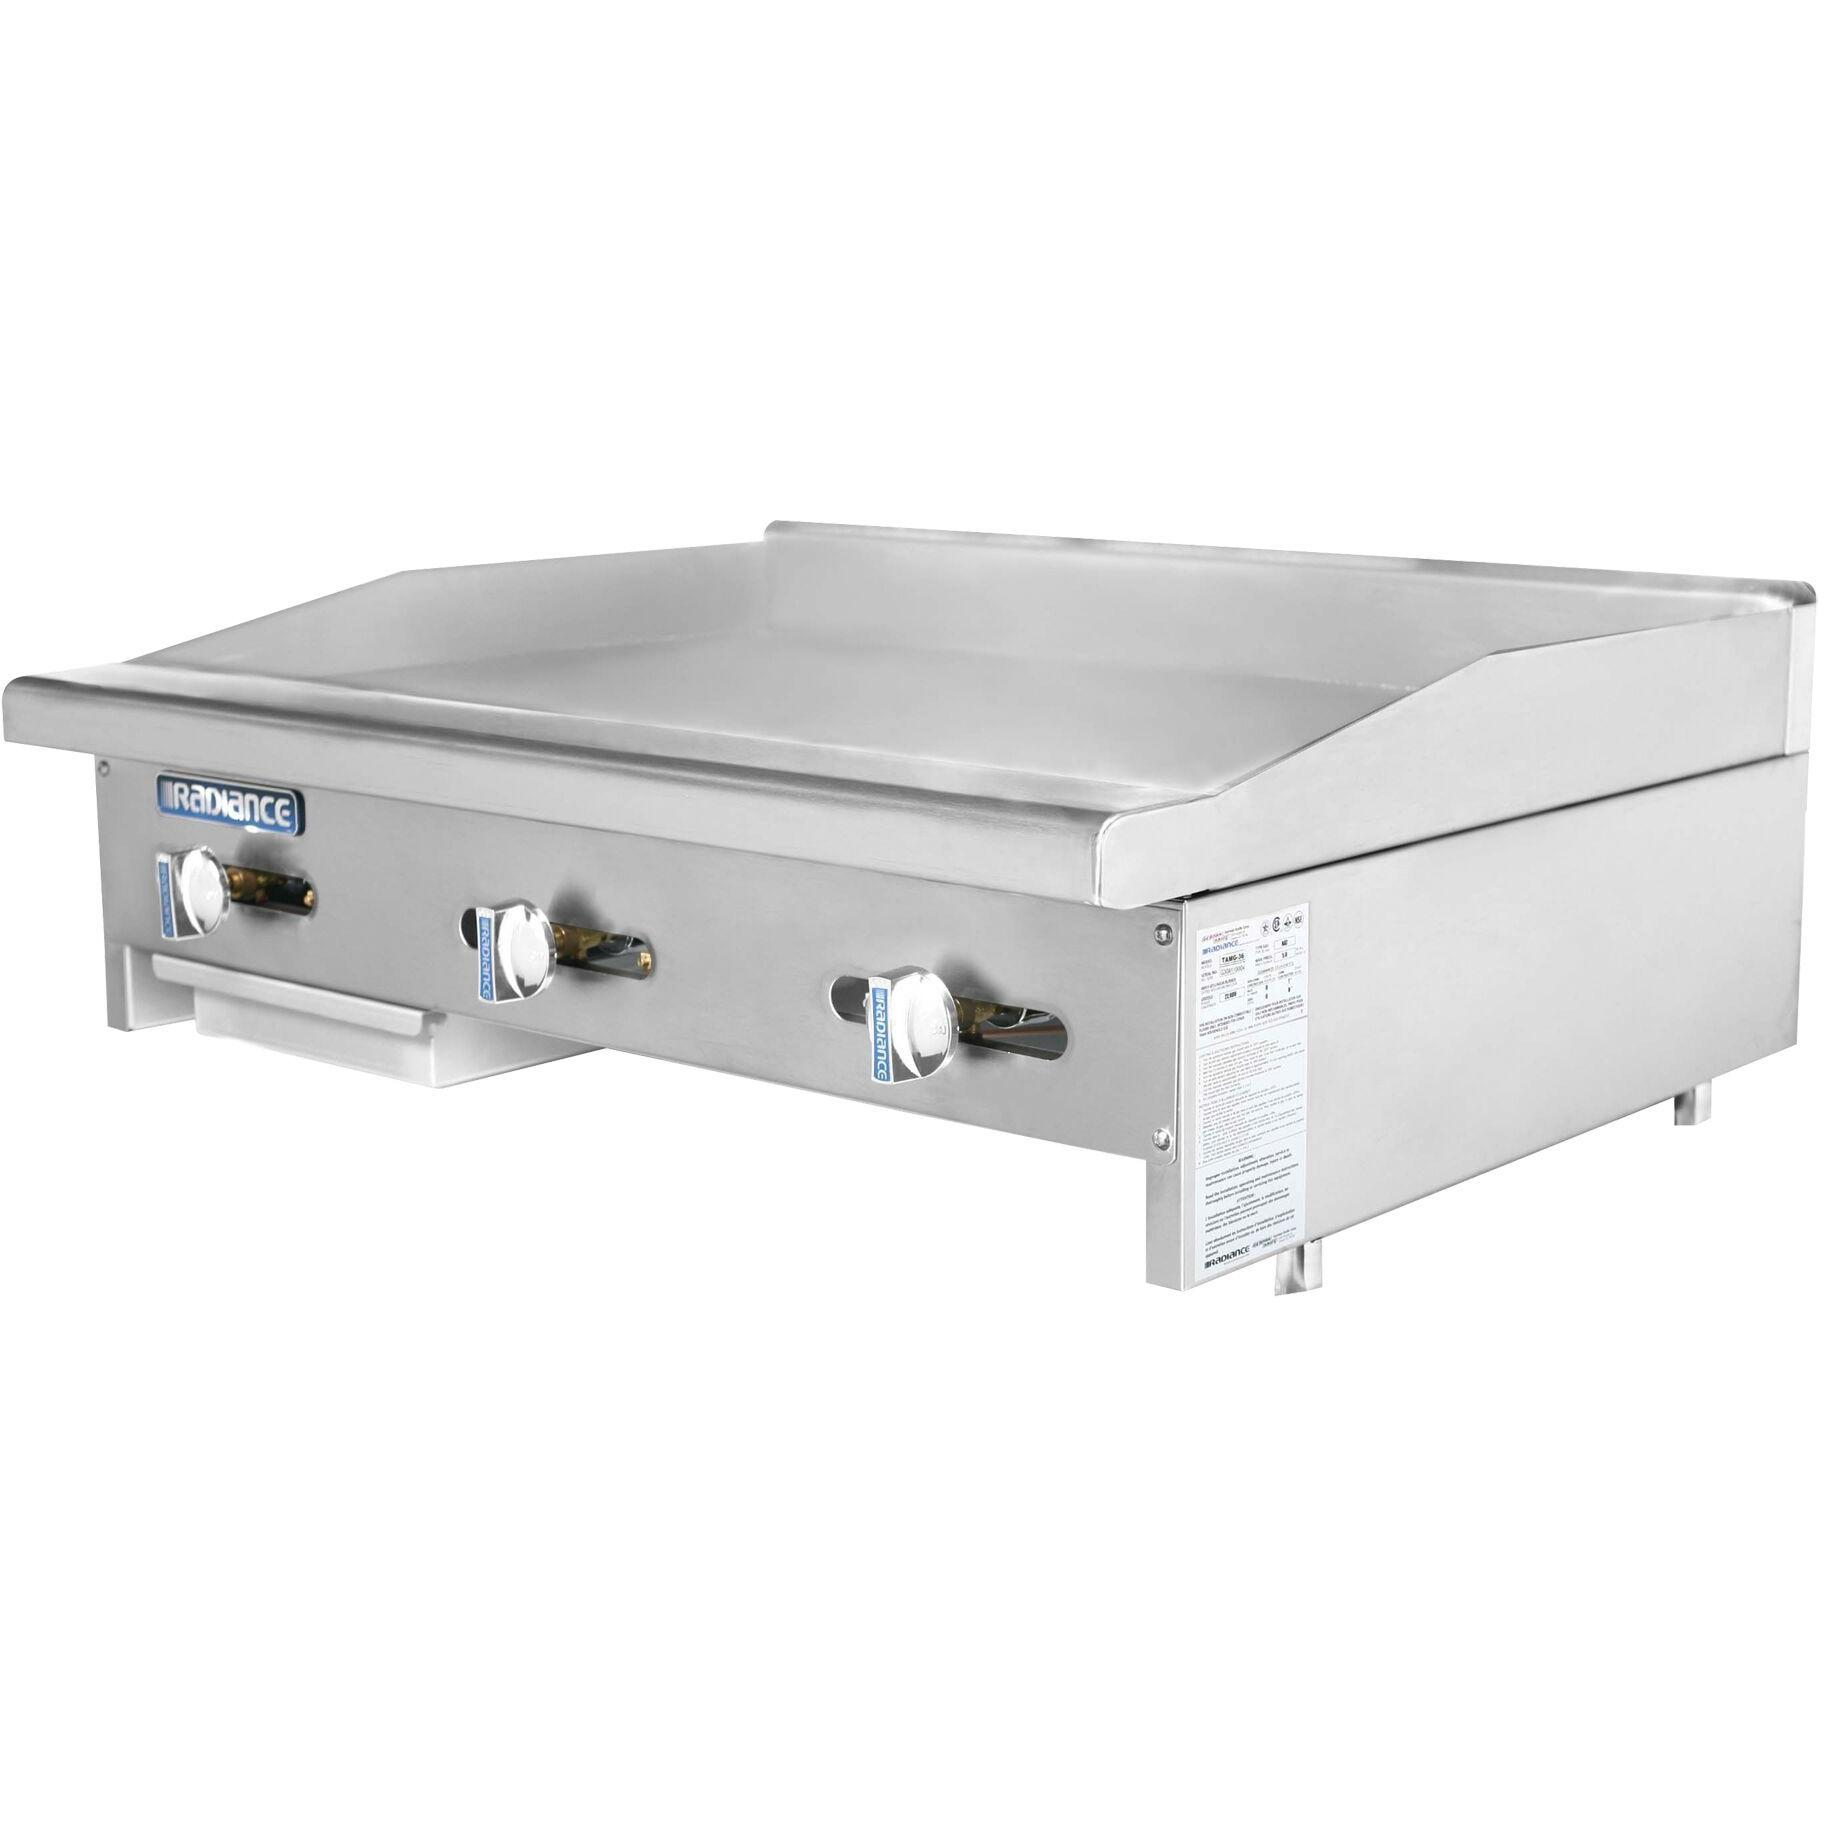 Radiance Commercial Kitchen Countertop Flat Gas Griddle 36